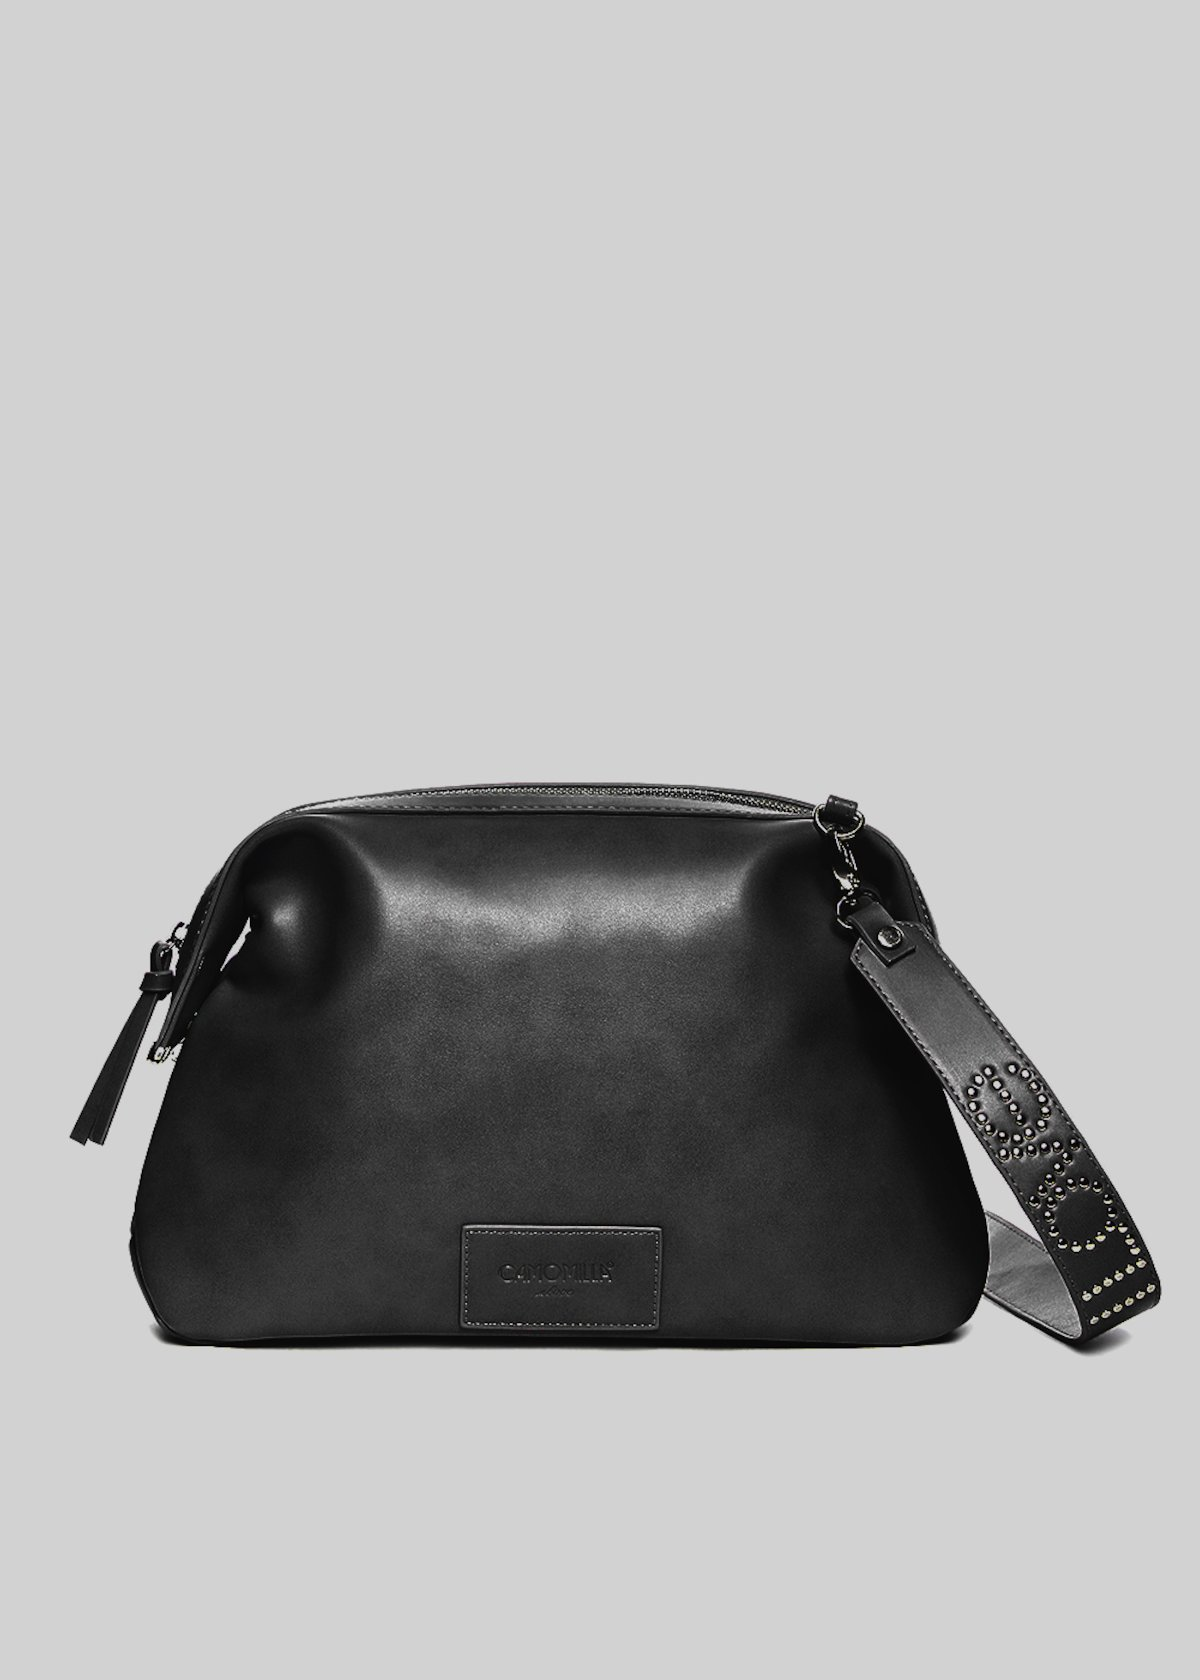 Broke faux leather handle bag with logoed shoulder strap - Black - Woman - Category image